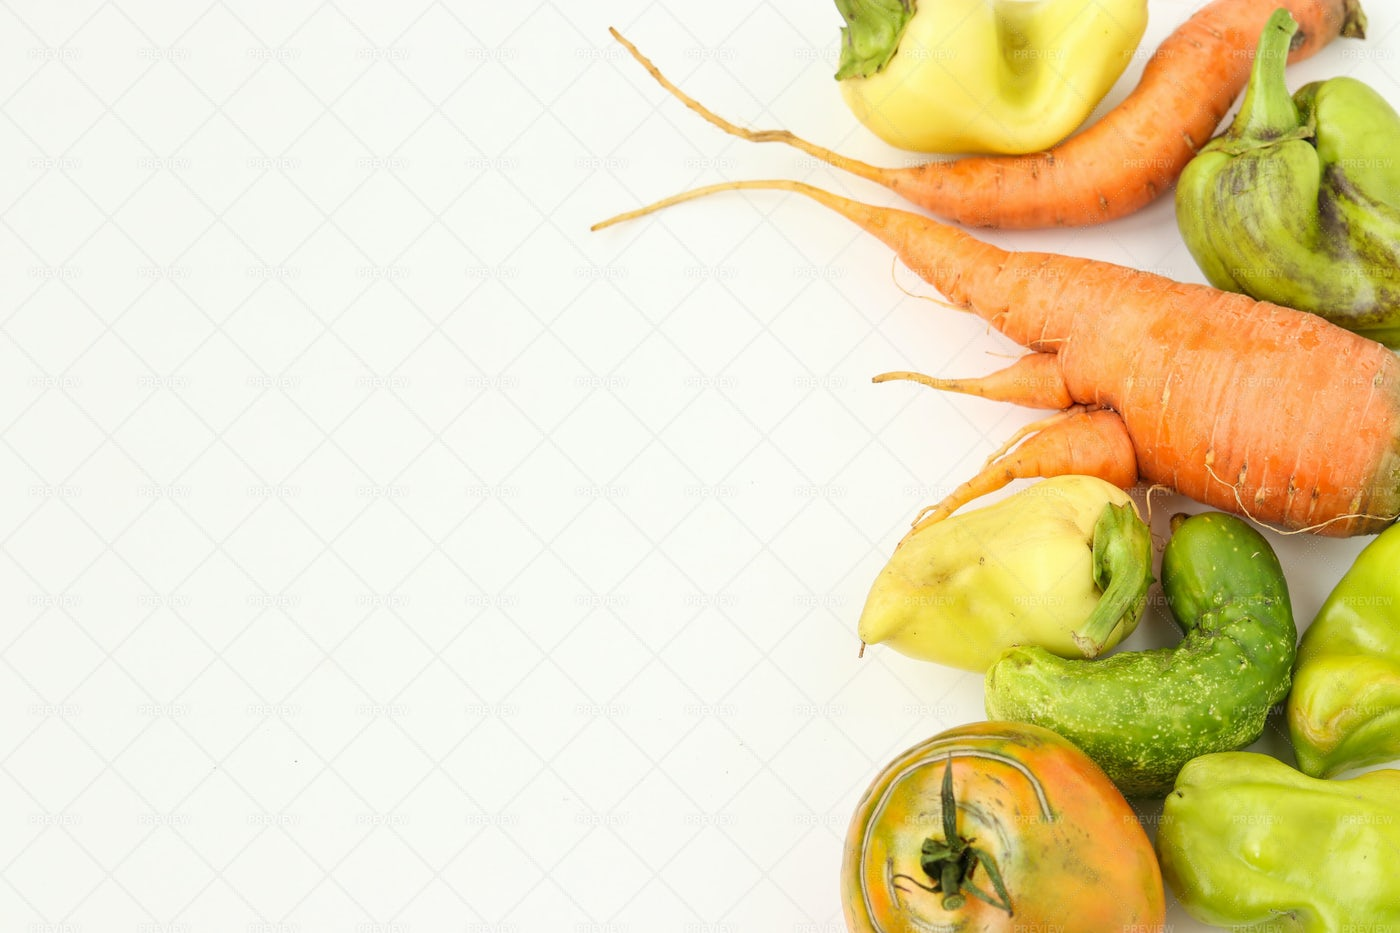 Ugly Organic Vegetables: Stock Photos